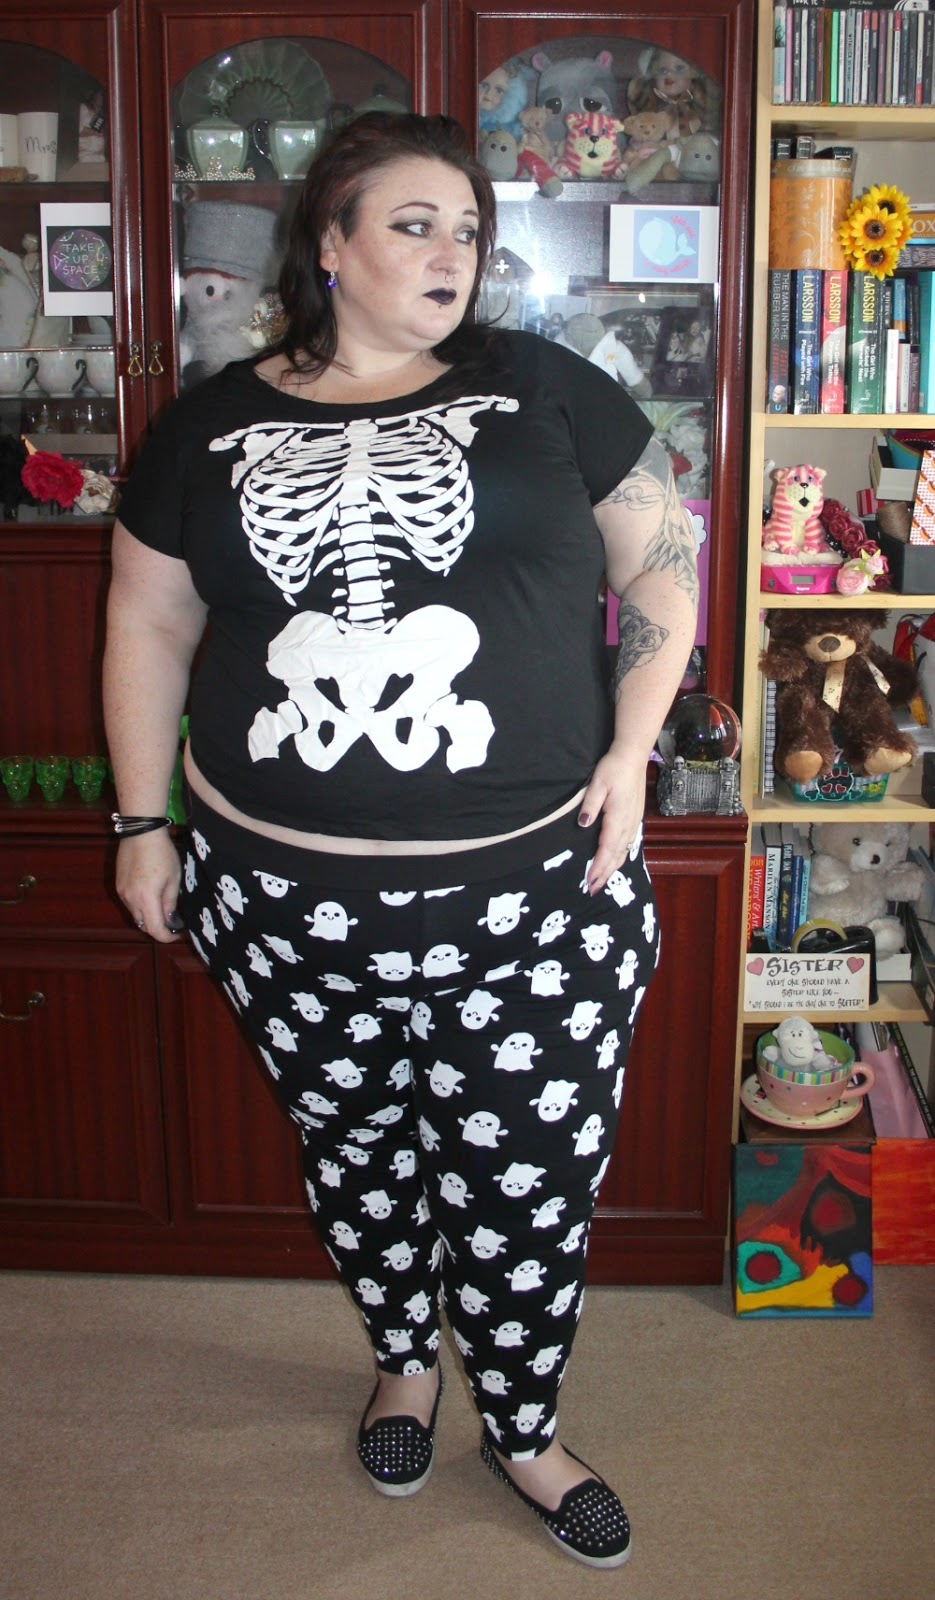 Plus size black and white Halloween outfit